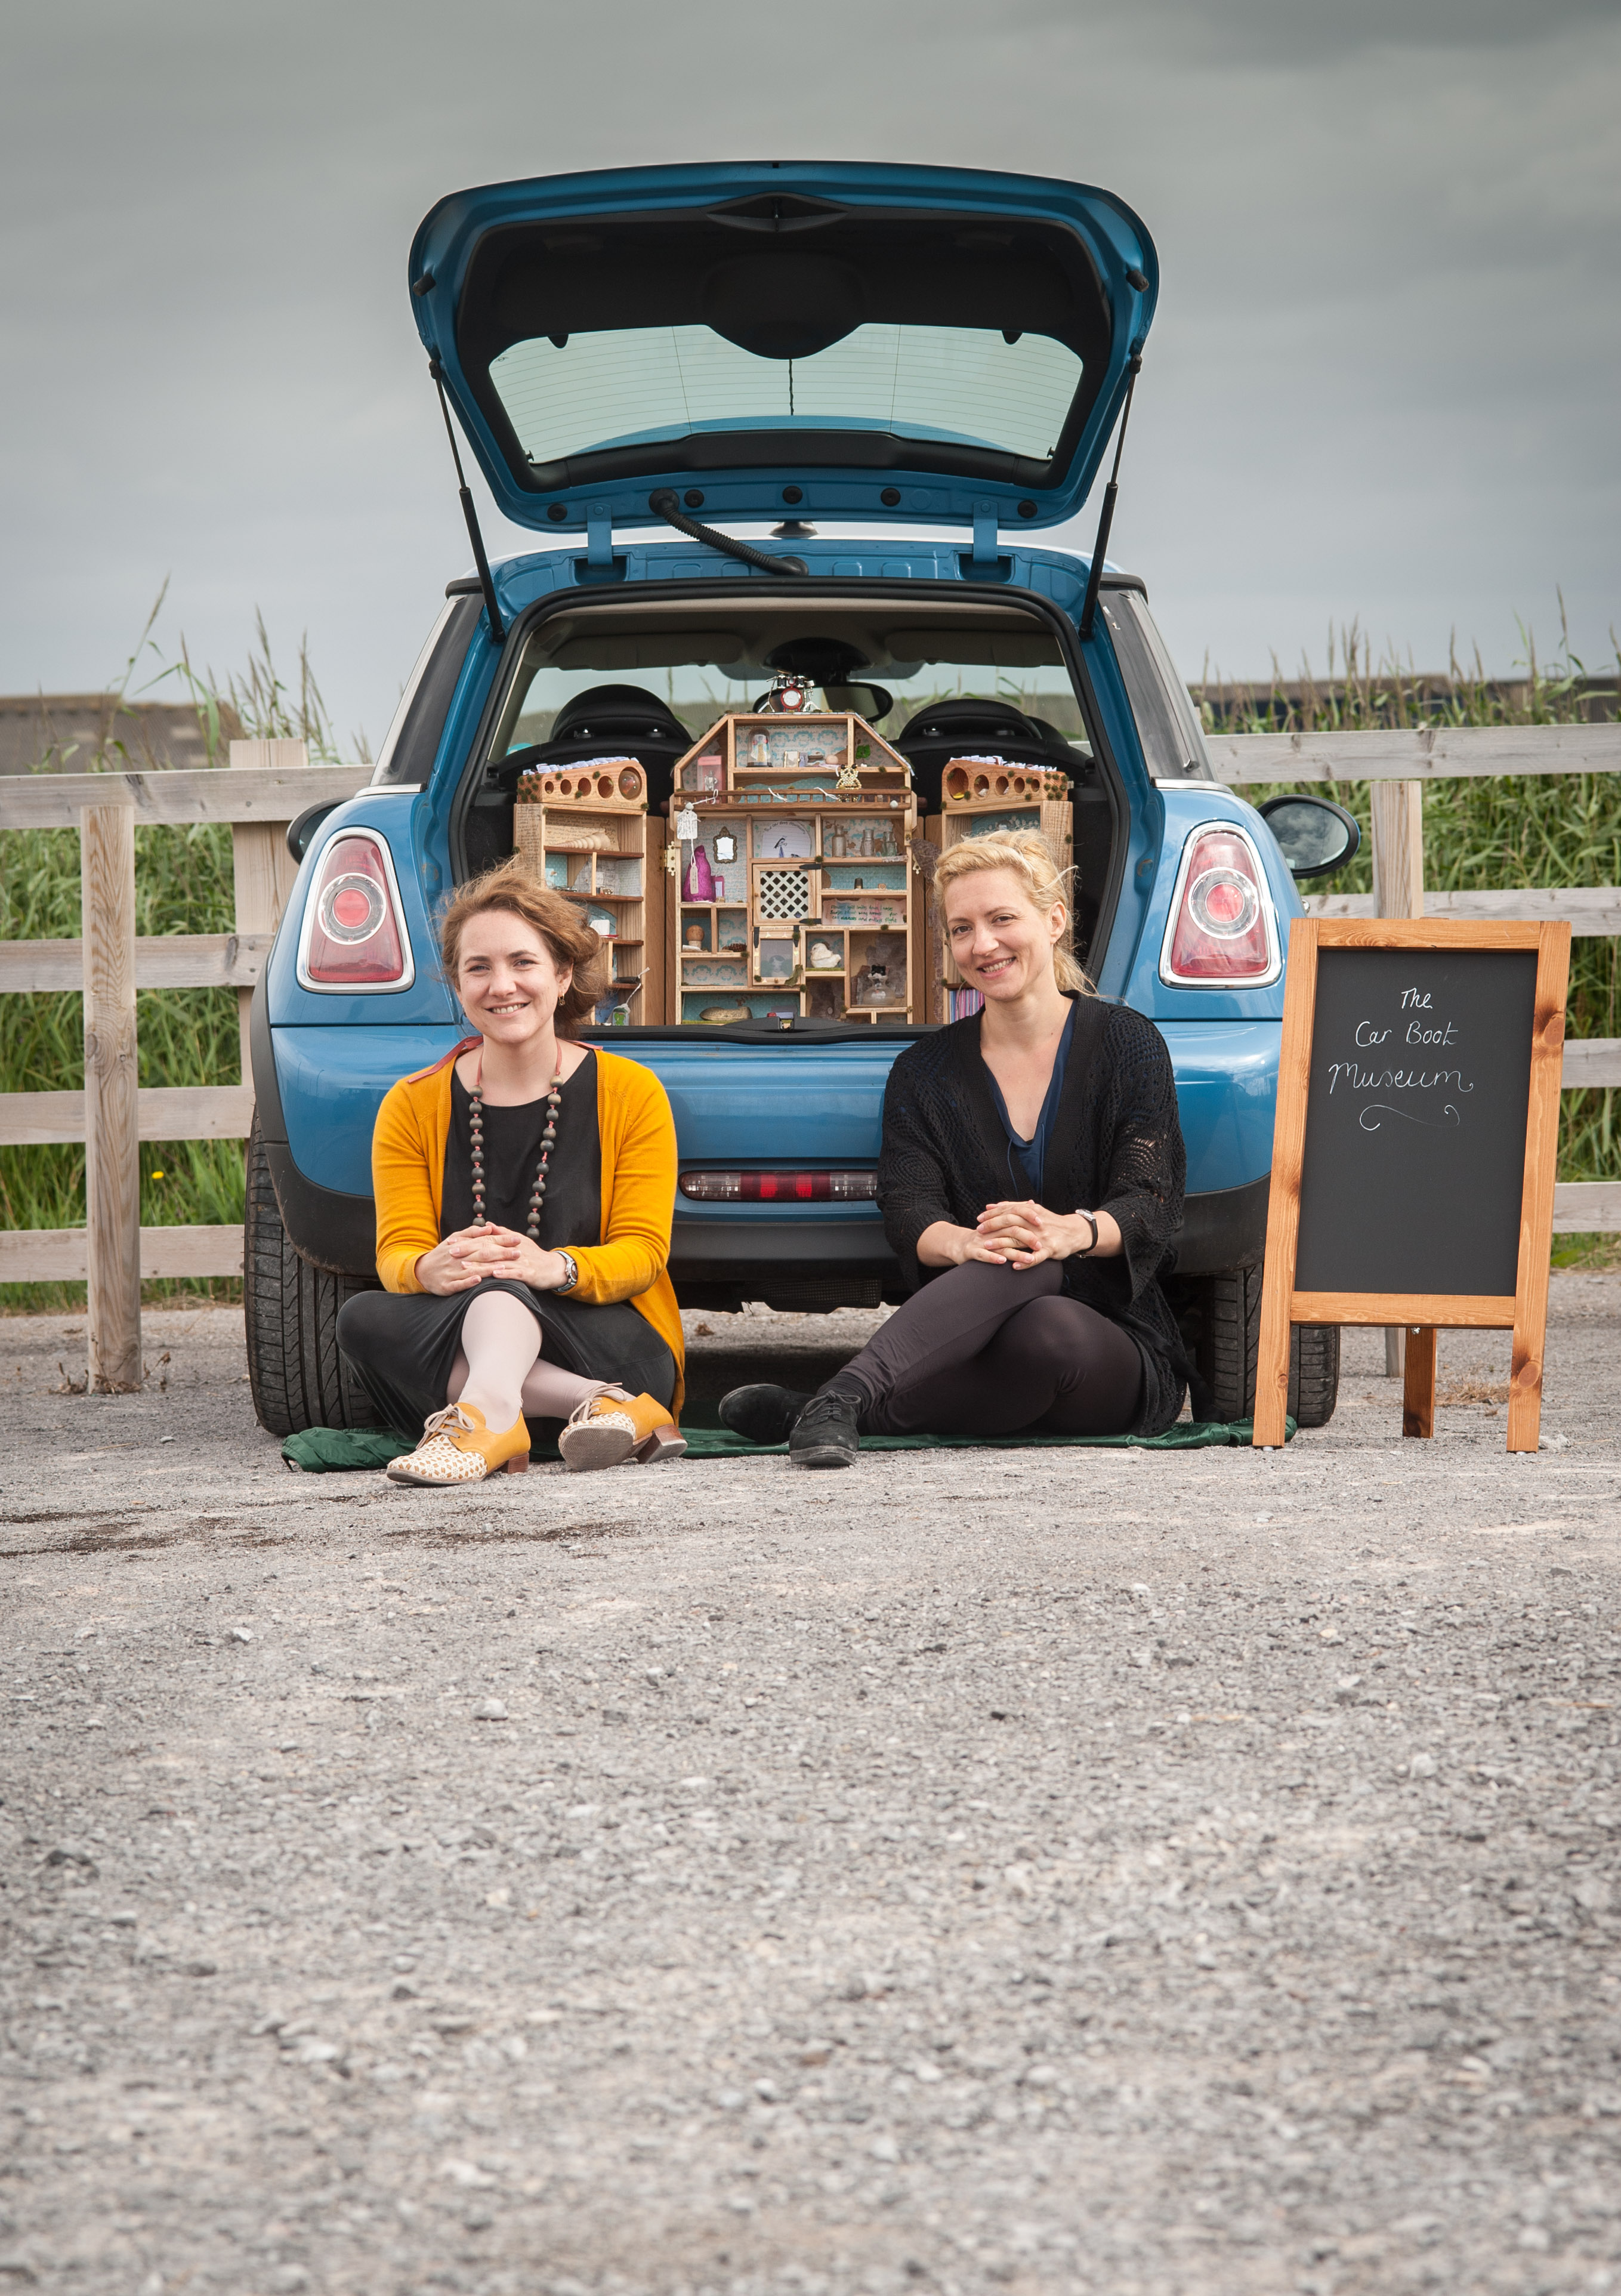 "Alice Maddicott (left) and Ana Seferovic with their miniature museum in a car boot touring scenic locations, roadsides, towns and villages around Somerset. Picture by Clint Randall www.pixelprphotography.co.uk A car boot containing a miniature museum Is popping up at scenic locations, roadsides, towns and villages around Somerset. The Car Boot Museum's specially created wooden cabinet houses a collection of everyday objects, text and images put together by artist and writer Alice Maddicott. She is joined on the tour by poet Ana Seferovic to create a collaborative poetic travelogue. The project has been commissioned by Somerset Art Works for this year's Arts Weeks Festival. Alice is touring her home county to discover the secret stories behind objects and the local landscape. Visitors are invited to bring along their own objects which can be donated to the Museum or be recorded and taken away again. People can write their own ideas and memories of the area and add them to the Car Boot Museum. Alice said: ""I would love people to bring along objects with a special memory for them or an interesting tale to tell. We rely so much on storing information digitally now, but I'd like to move away from that and to find out about the stories behind real objects. Sometimes an object has no value except to the person for whom it holds a special memory. I'd like people to share those stories."" The mini museum will evolve and change as it travels around the county. Each day it will be inspired by the places it visits and the new objects it acquires. The Car Boot Museum is winding its way along Somerset's roads, visiting Priddy Village green, Steart Marshes, Dunkery Beacon, Burrow Mump, Minehead and a range of other locations, ending up at Nunney Market Place on Sunday 9 August. Alice is using the objects and stories she gathers along the way to create an installation with sound and film for Somerset Art Weeks Festival. Alice was inspired by the theme for"